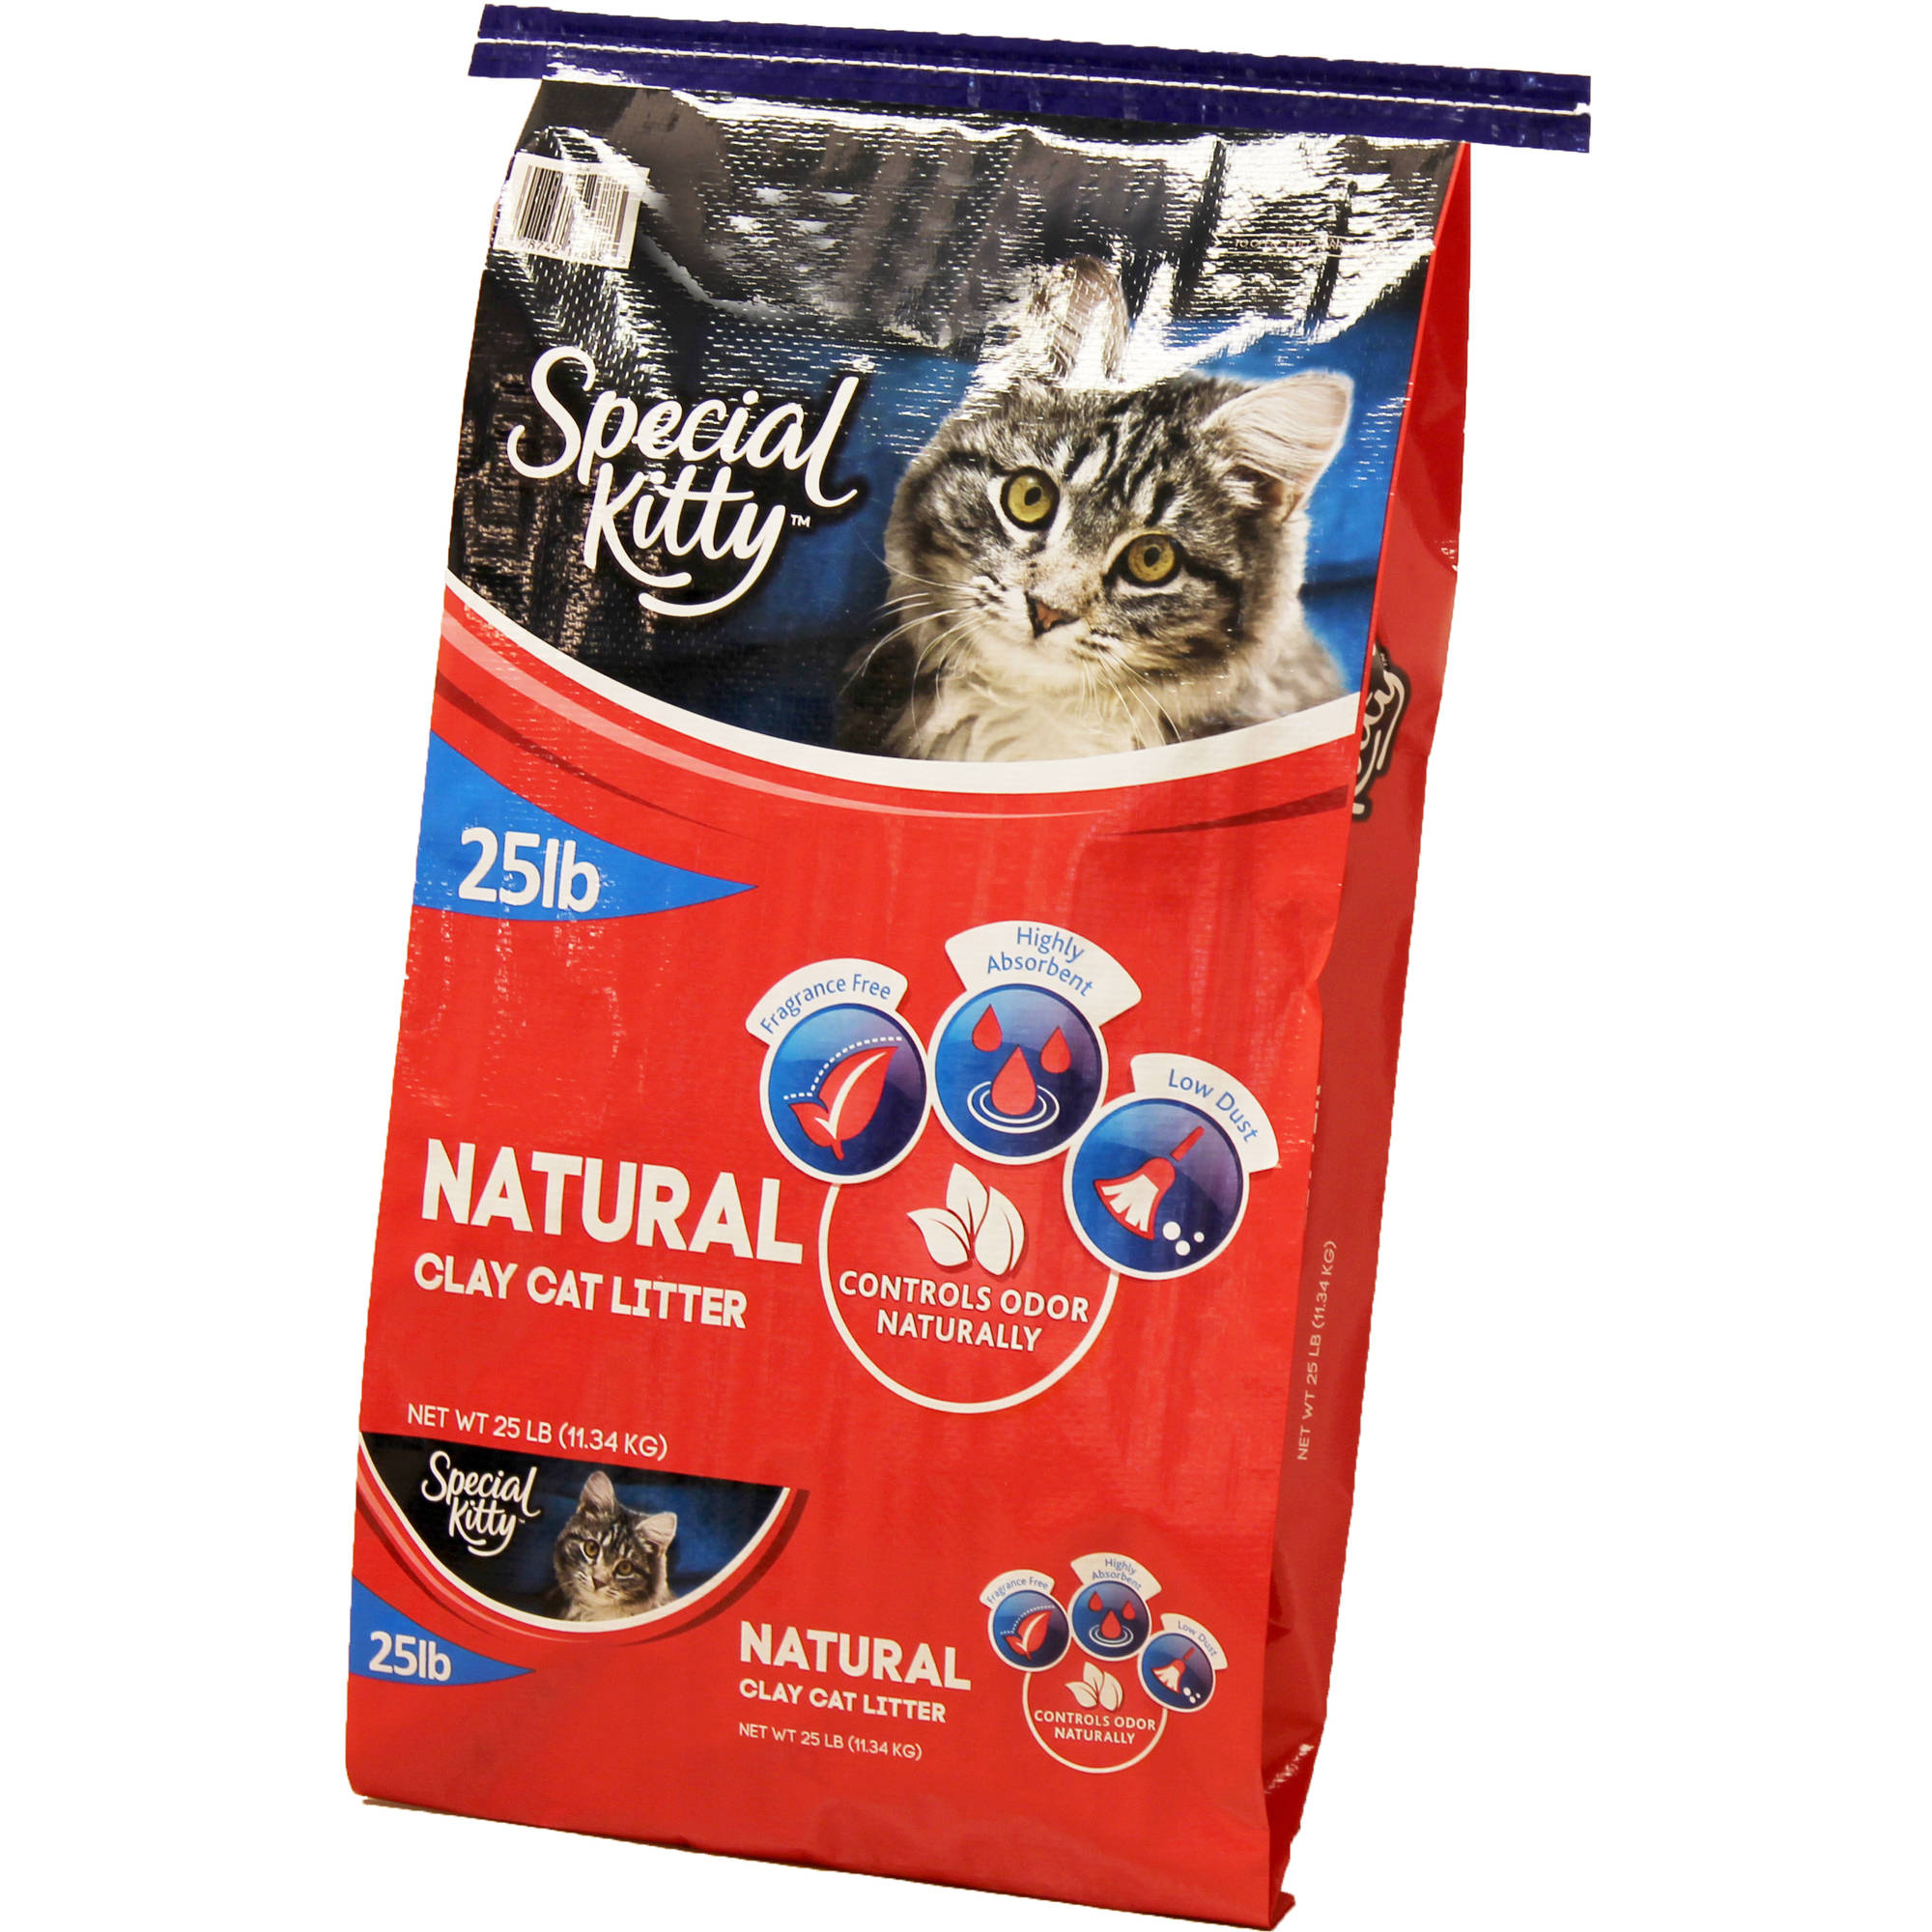 Special Kitty Unscented Natural Clay Cat Litter, 25 lb